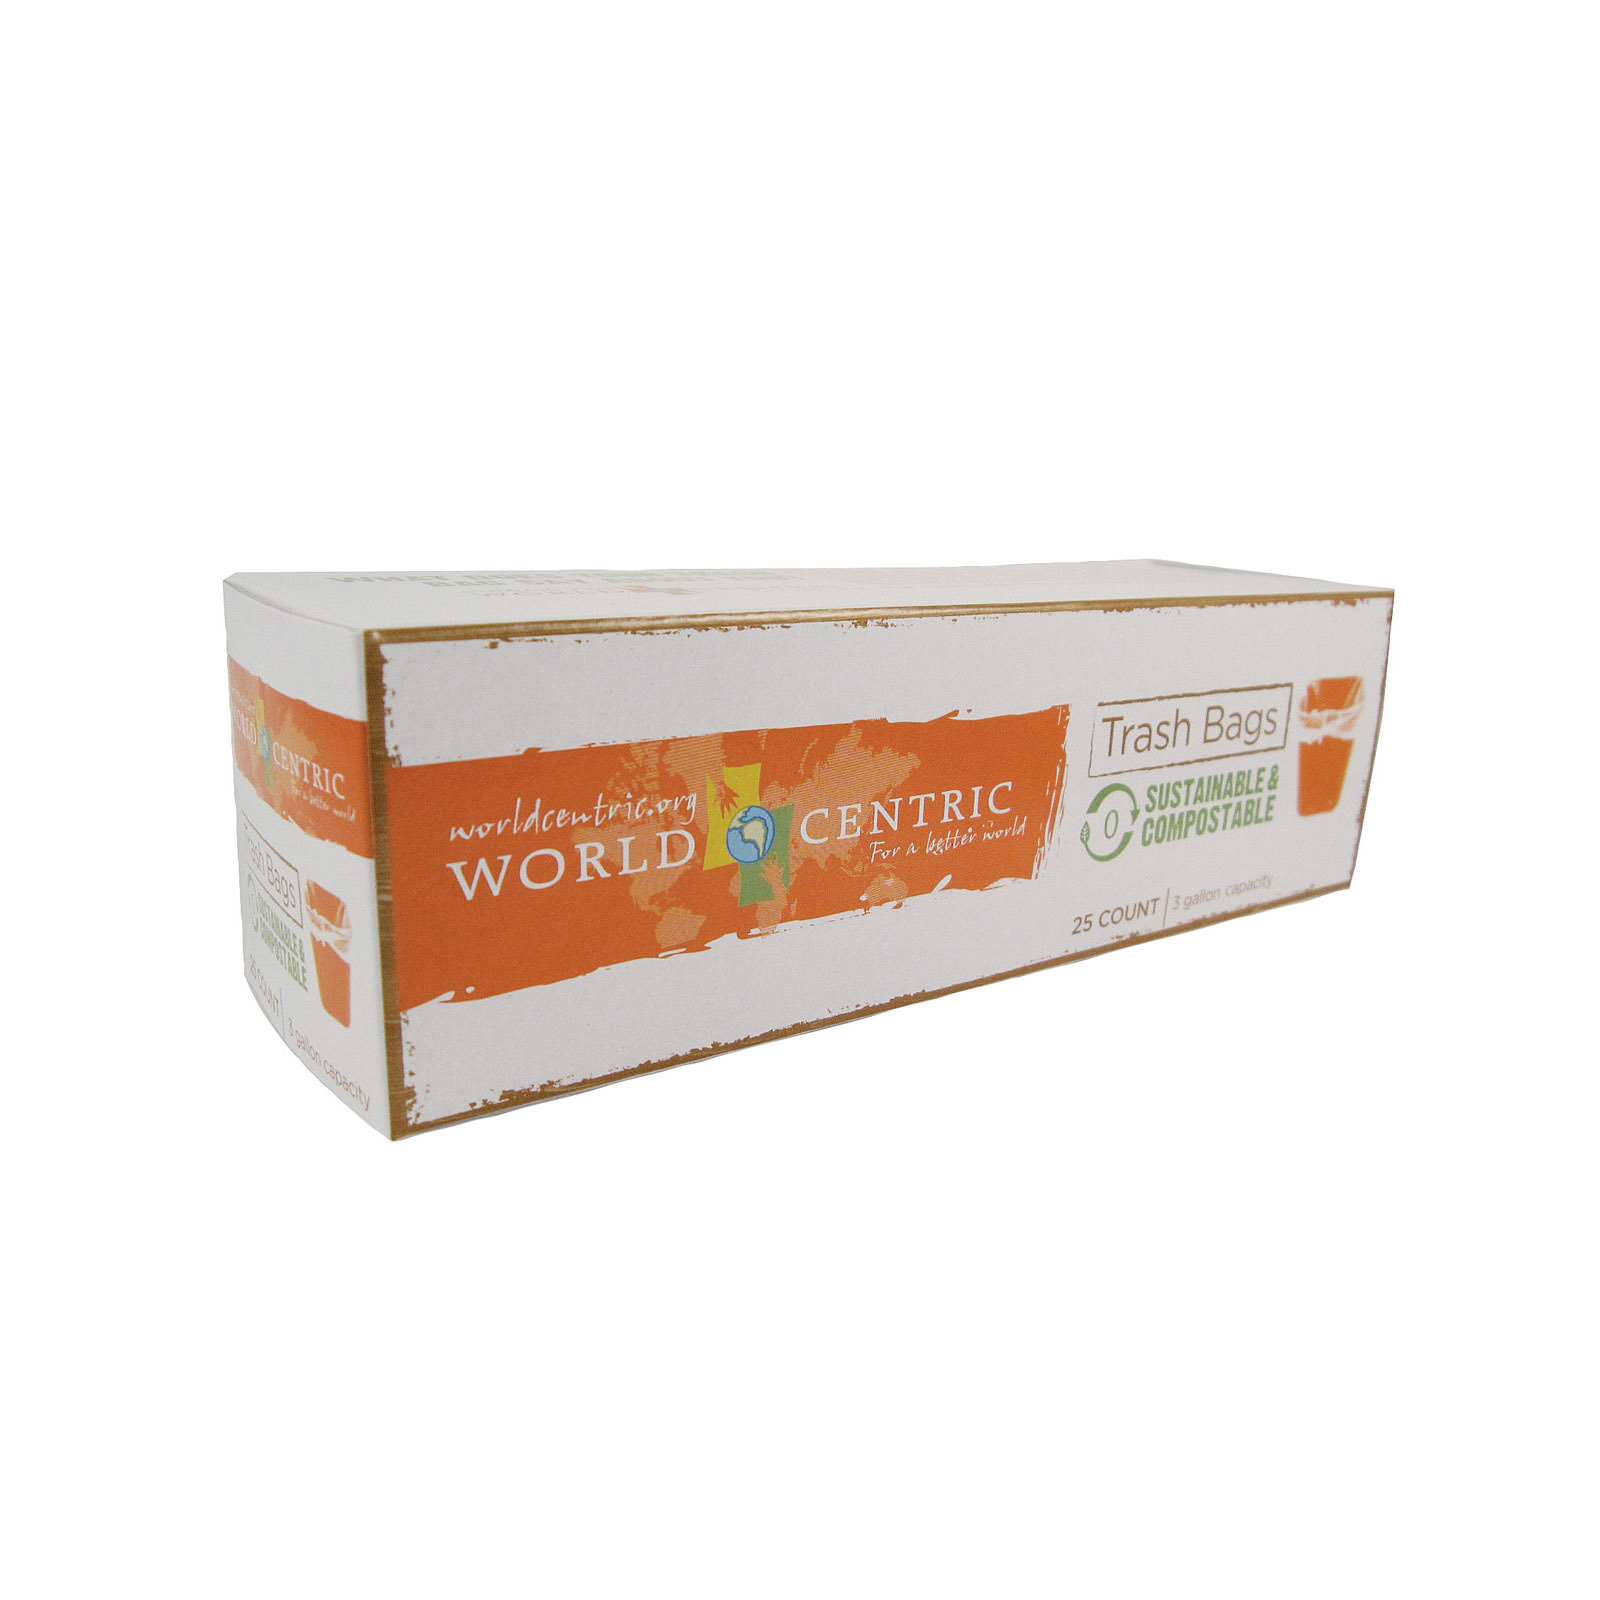 World Centric Compostable Waste Bag - Case of 12 - 3 Gal